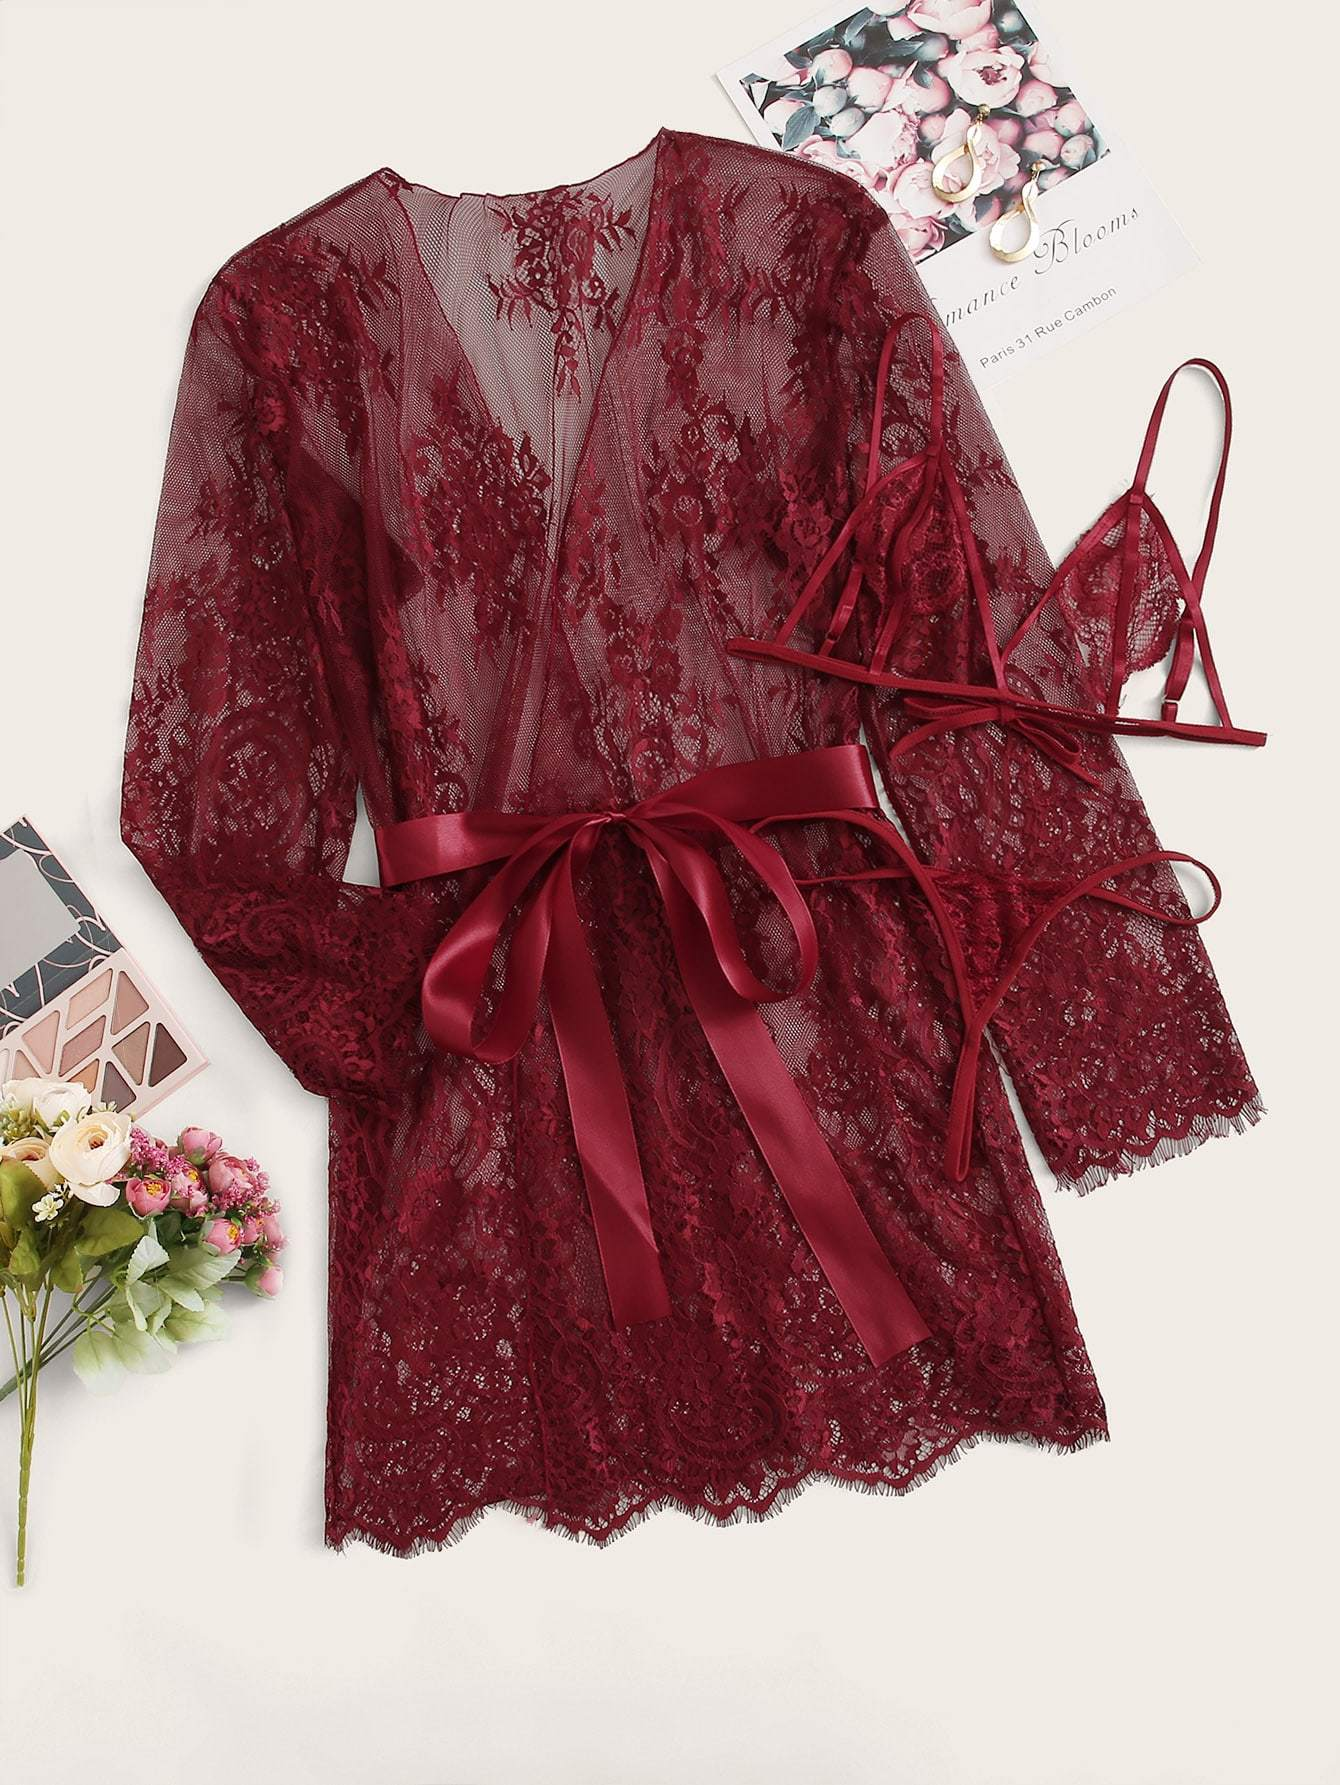 Plus Floral Lace Lingerie Set With Belted Robe - FLJ CORPORATIONS